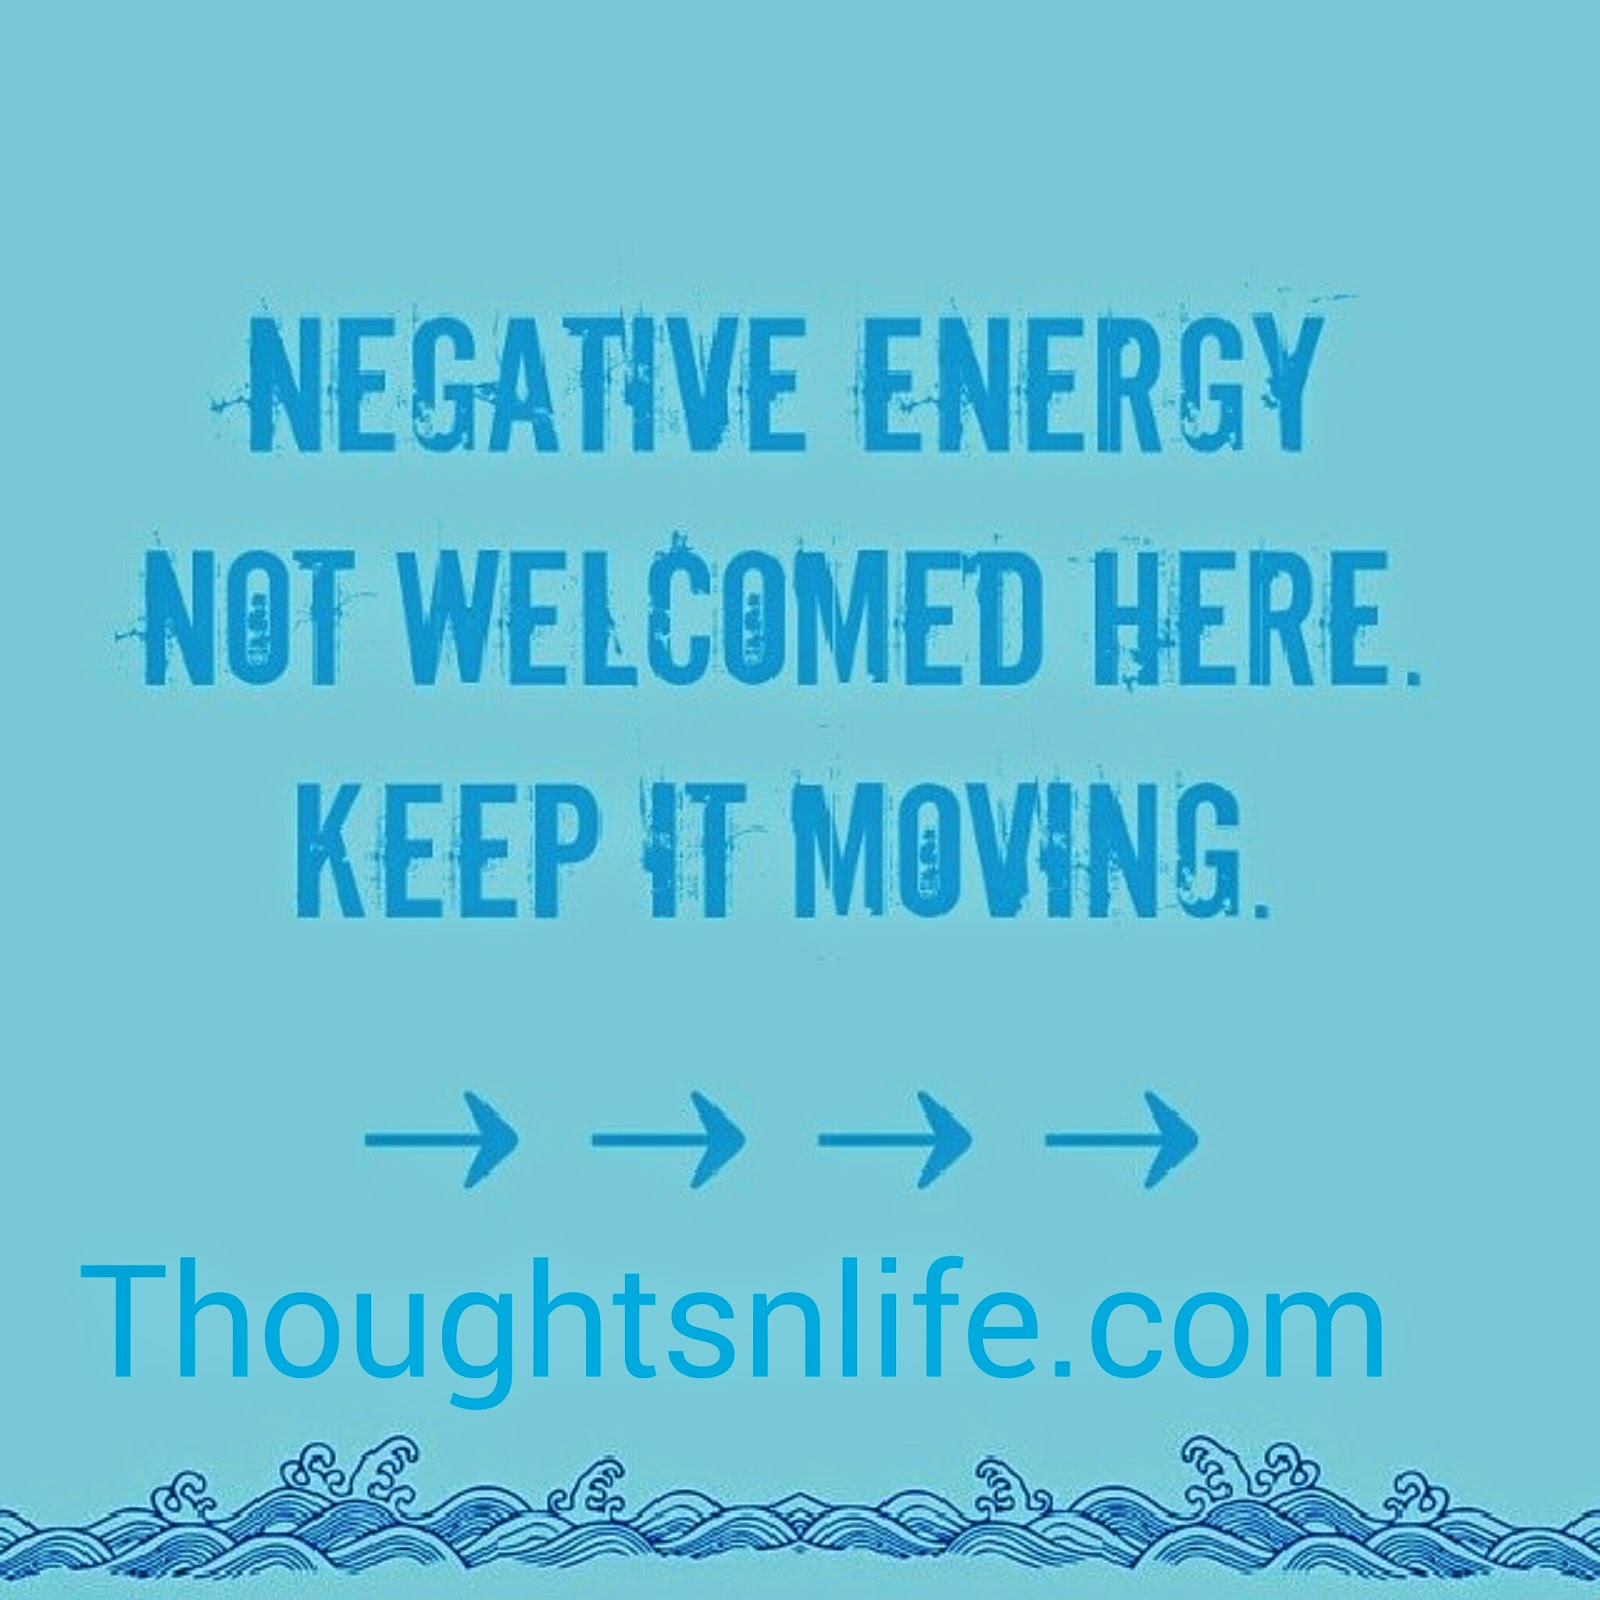 Thoughtsnlife, no negativity allowed here,Negative energy not welcomed here. Keep it moving.